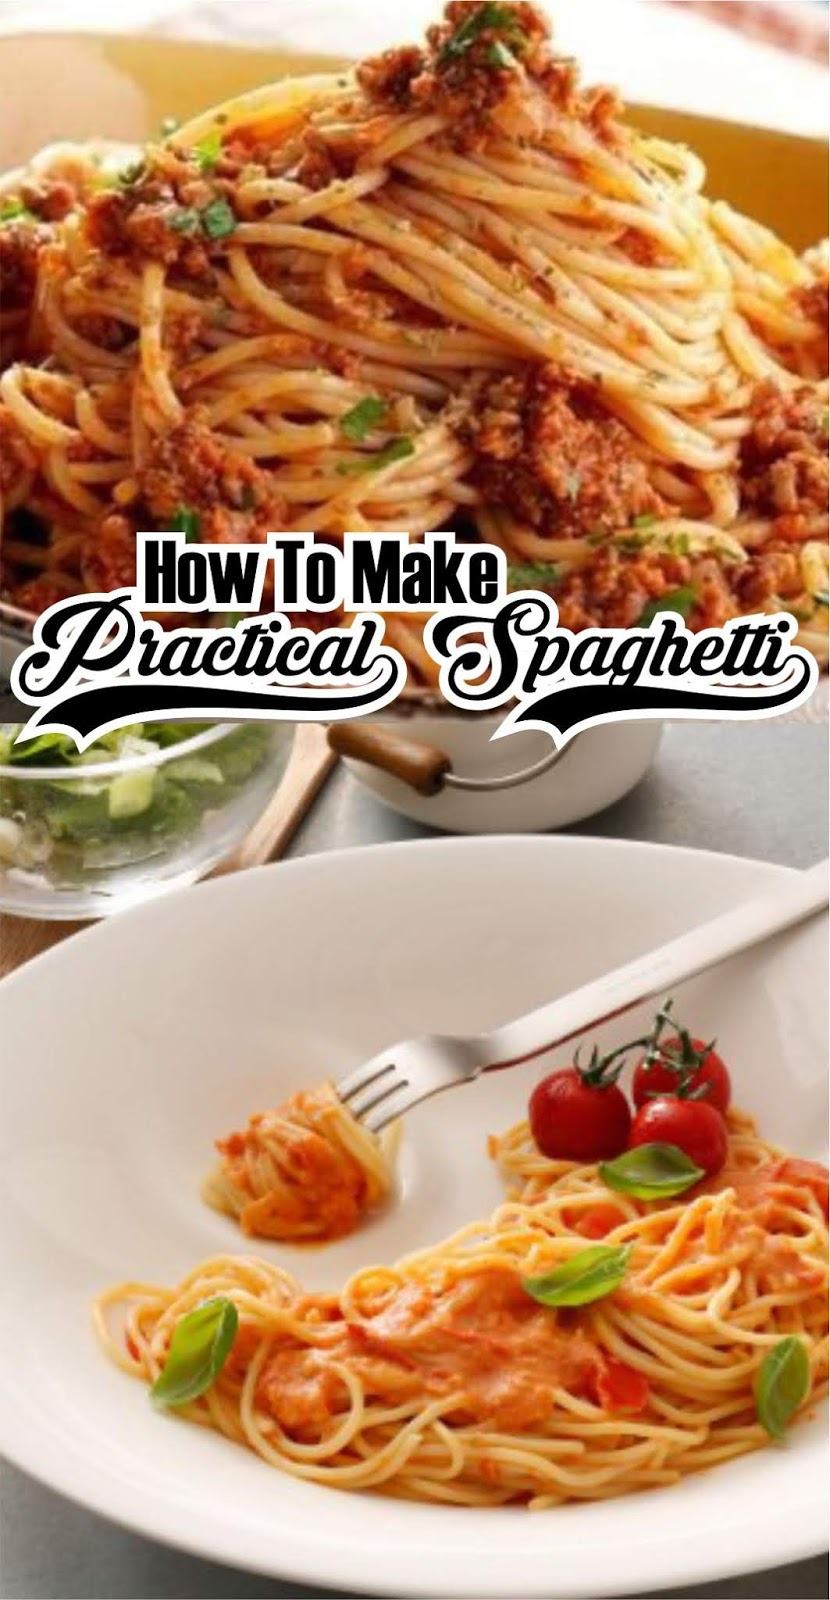 DELICIOUS AND PRACTICAL SPAGHETTI